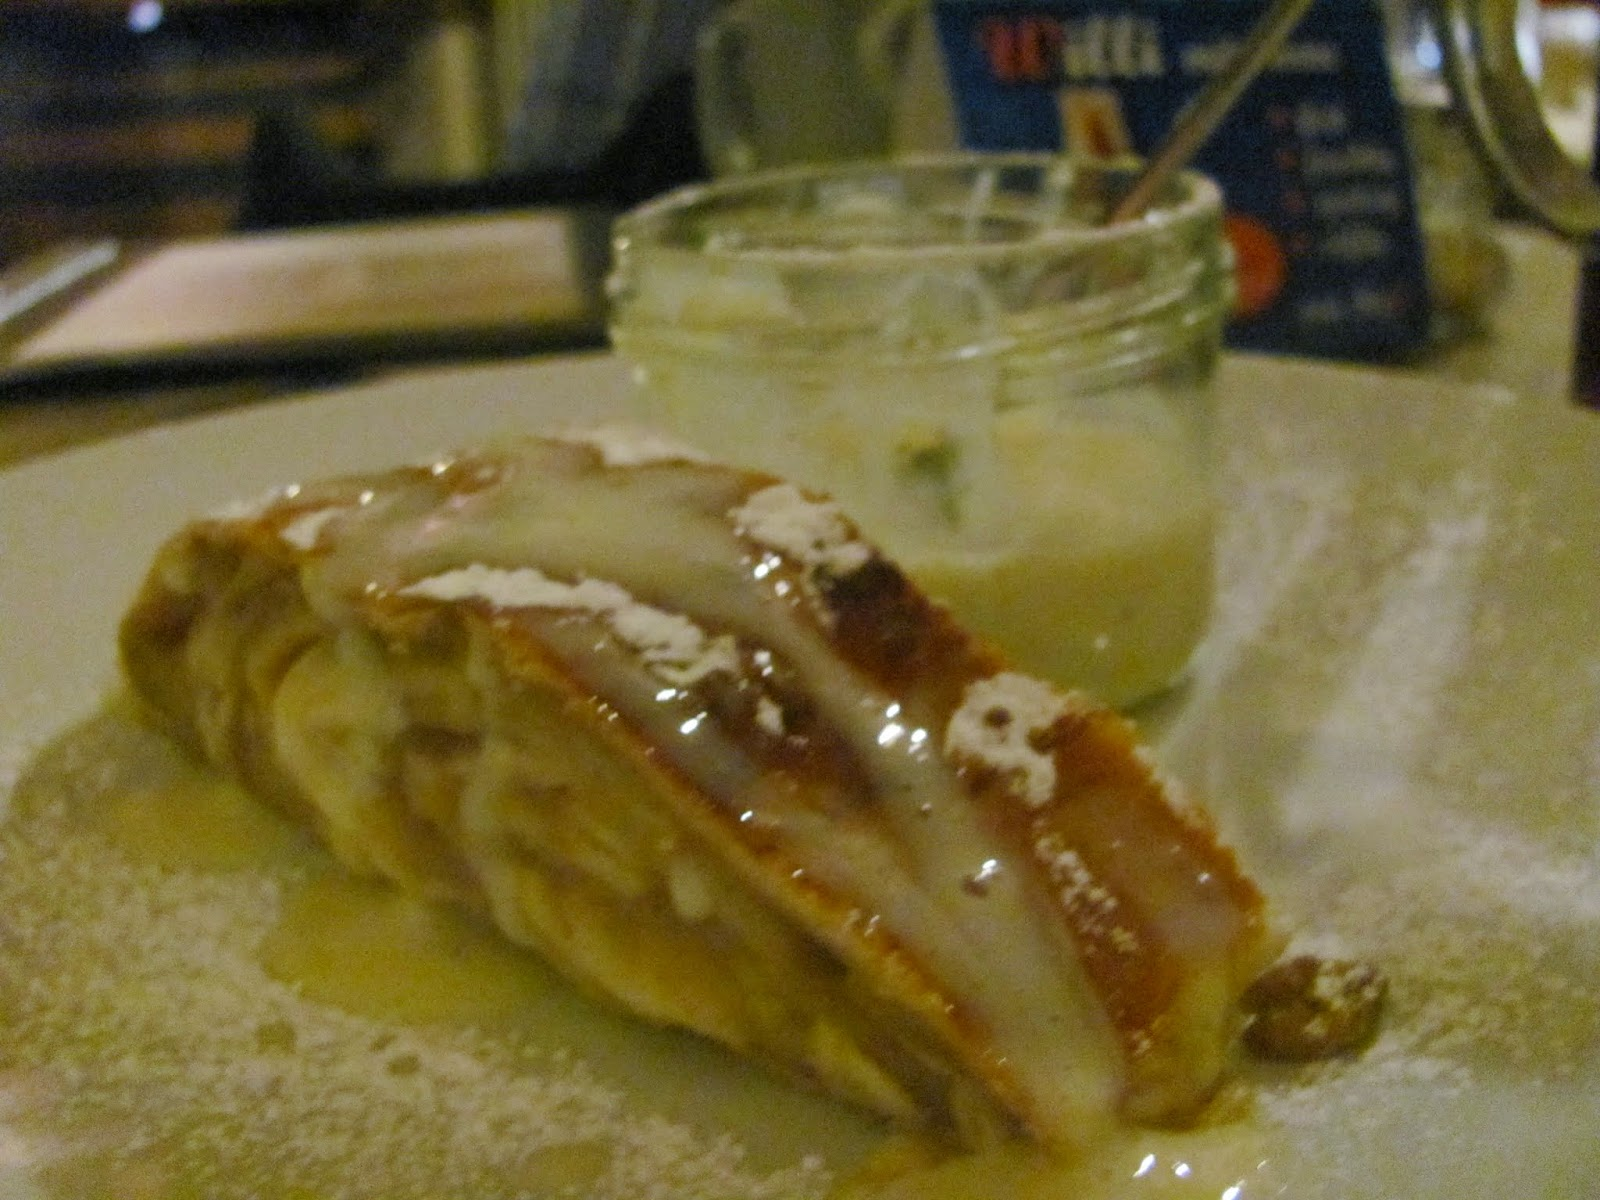 Apple Strudel at Augustiner Beer Hall Munich, Germany